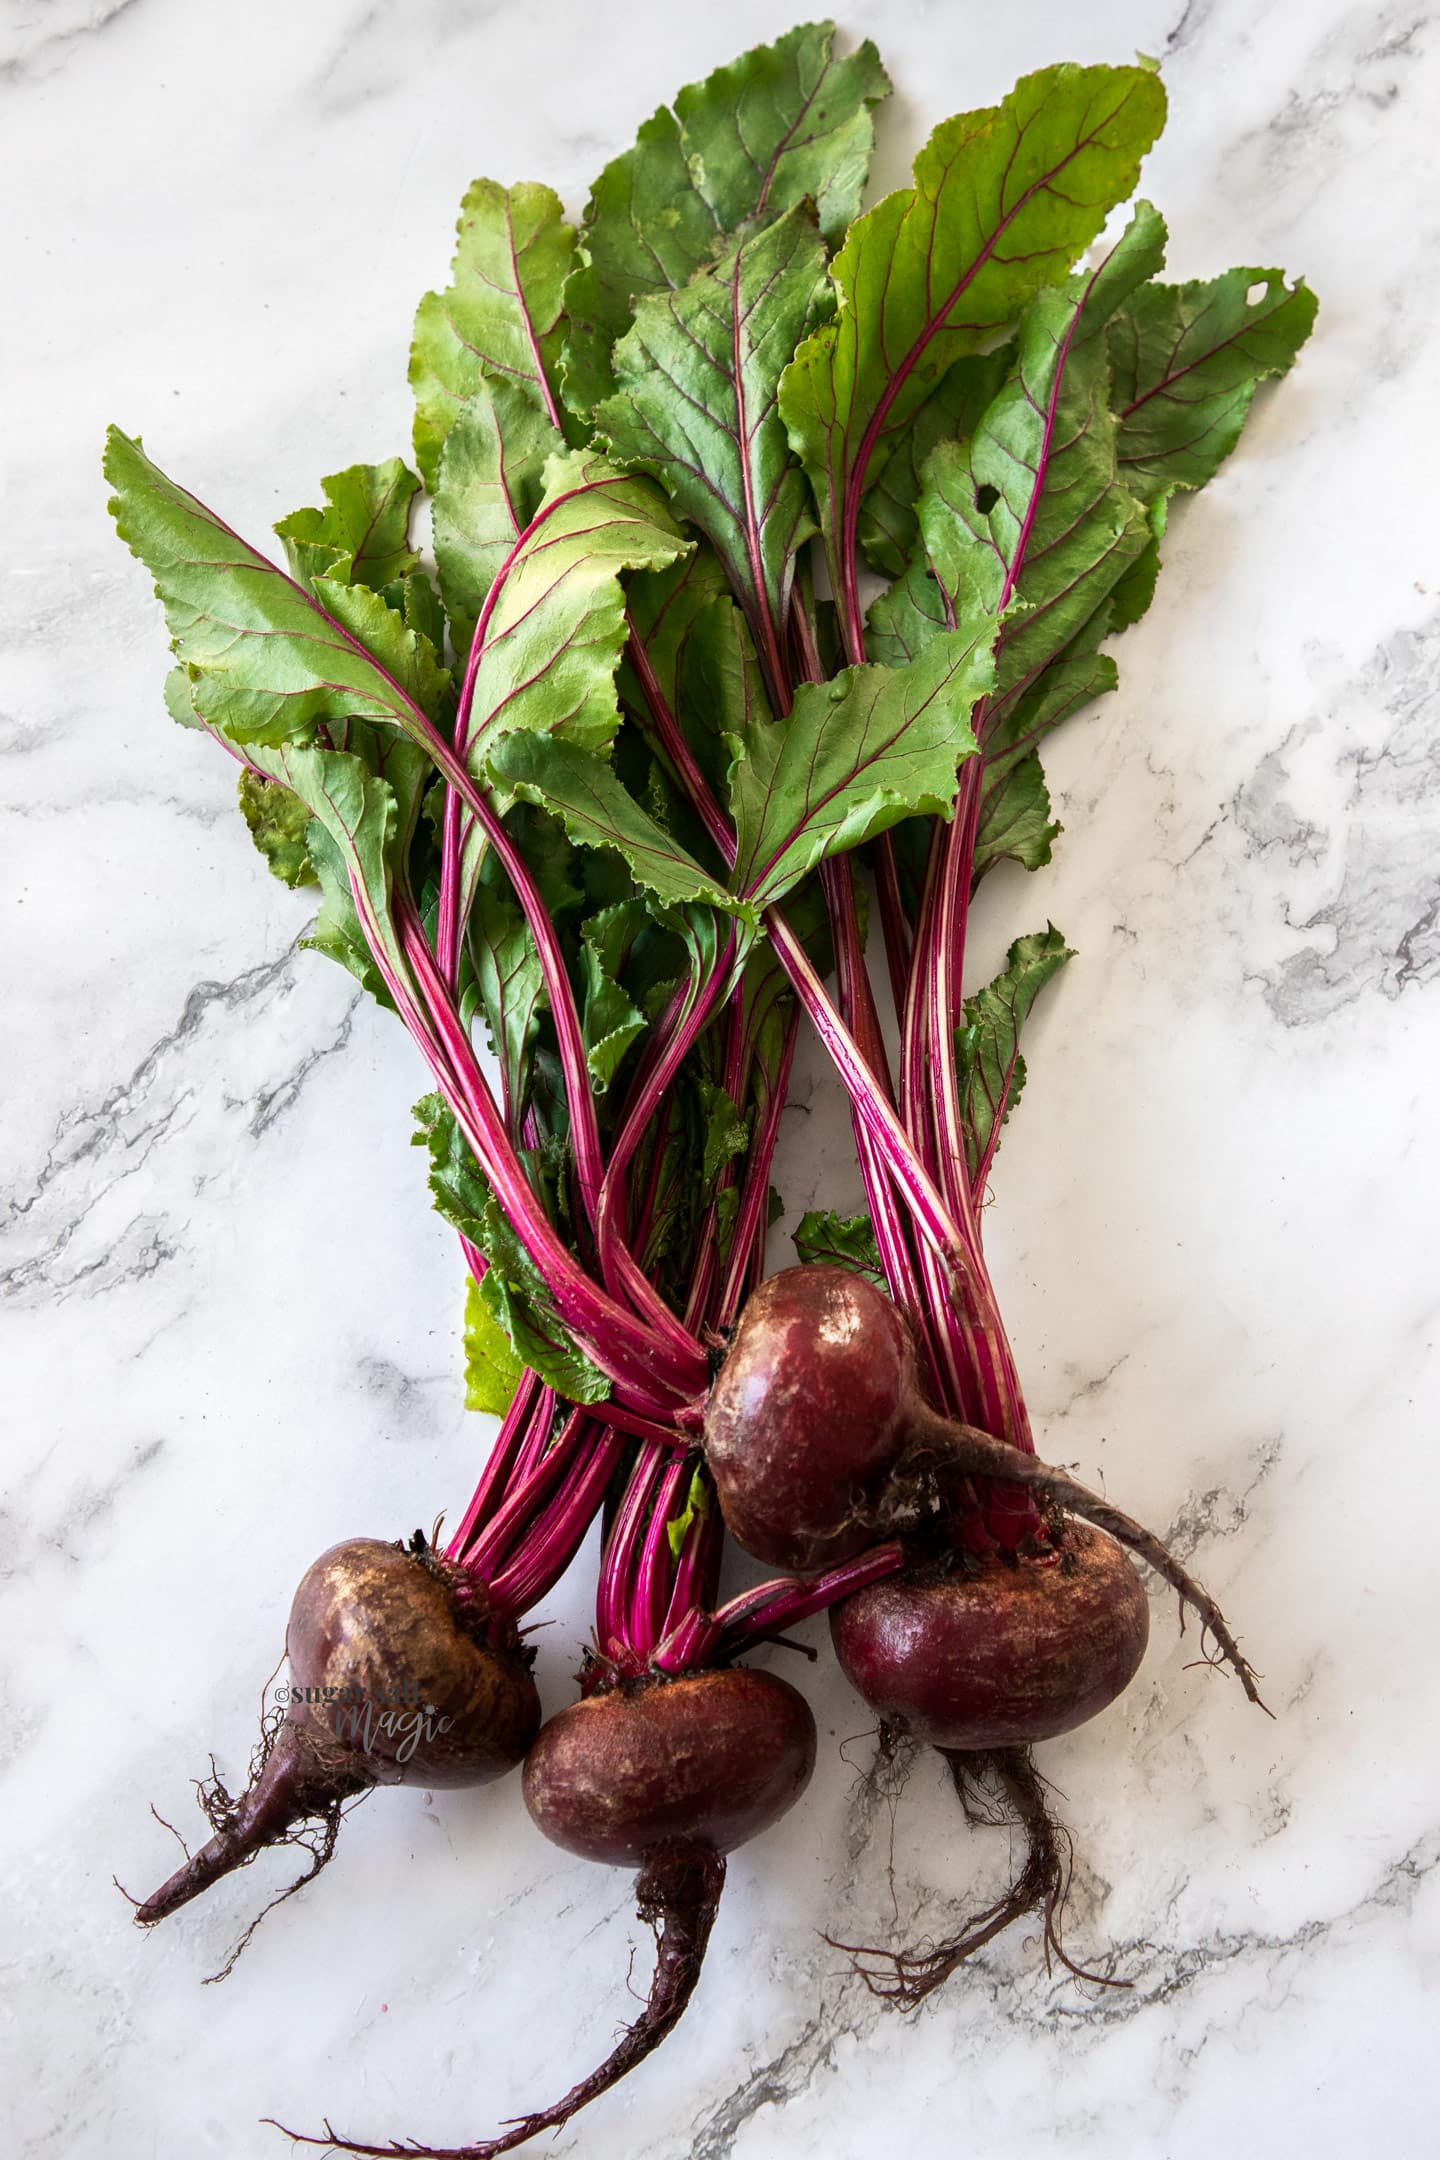 Top down view of 4 beetroot with bright green leaves